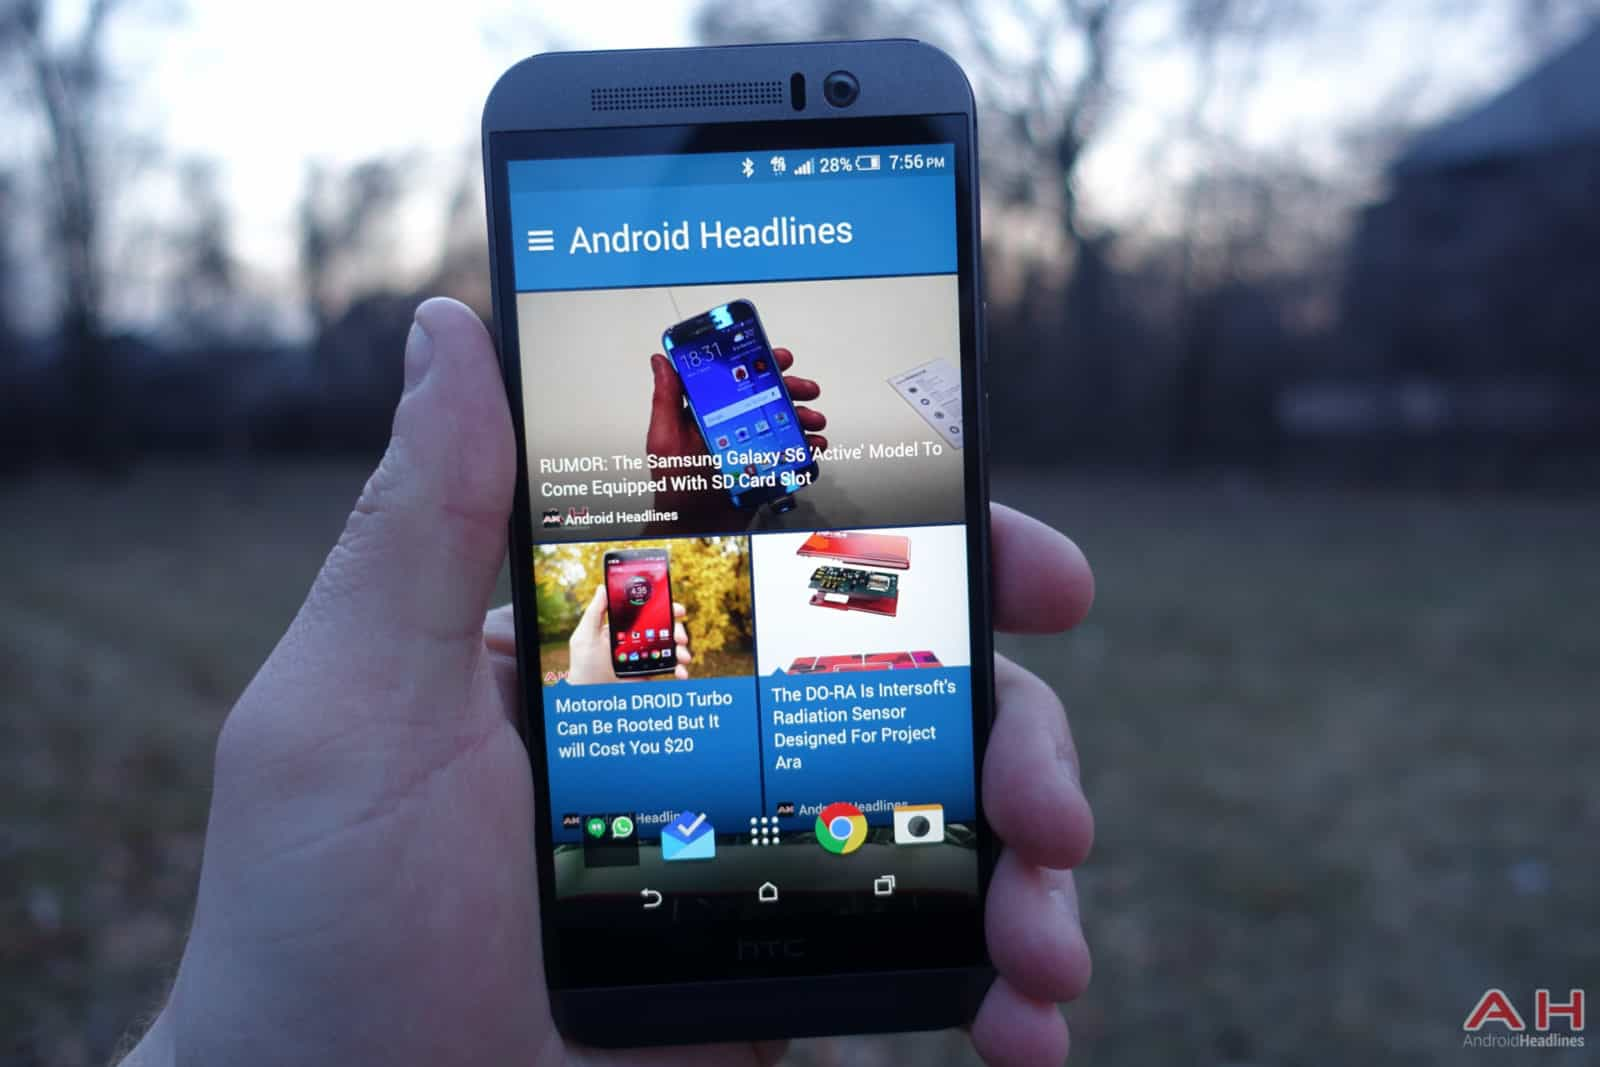 HTC-One-M9-Review-AH-21